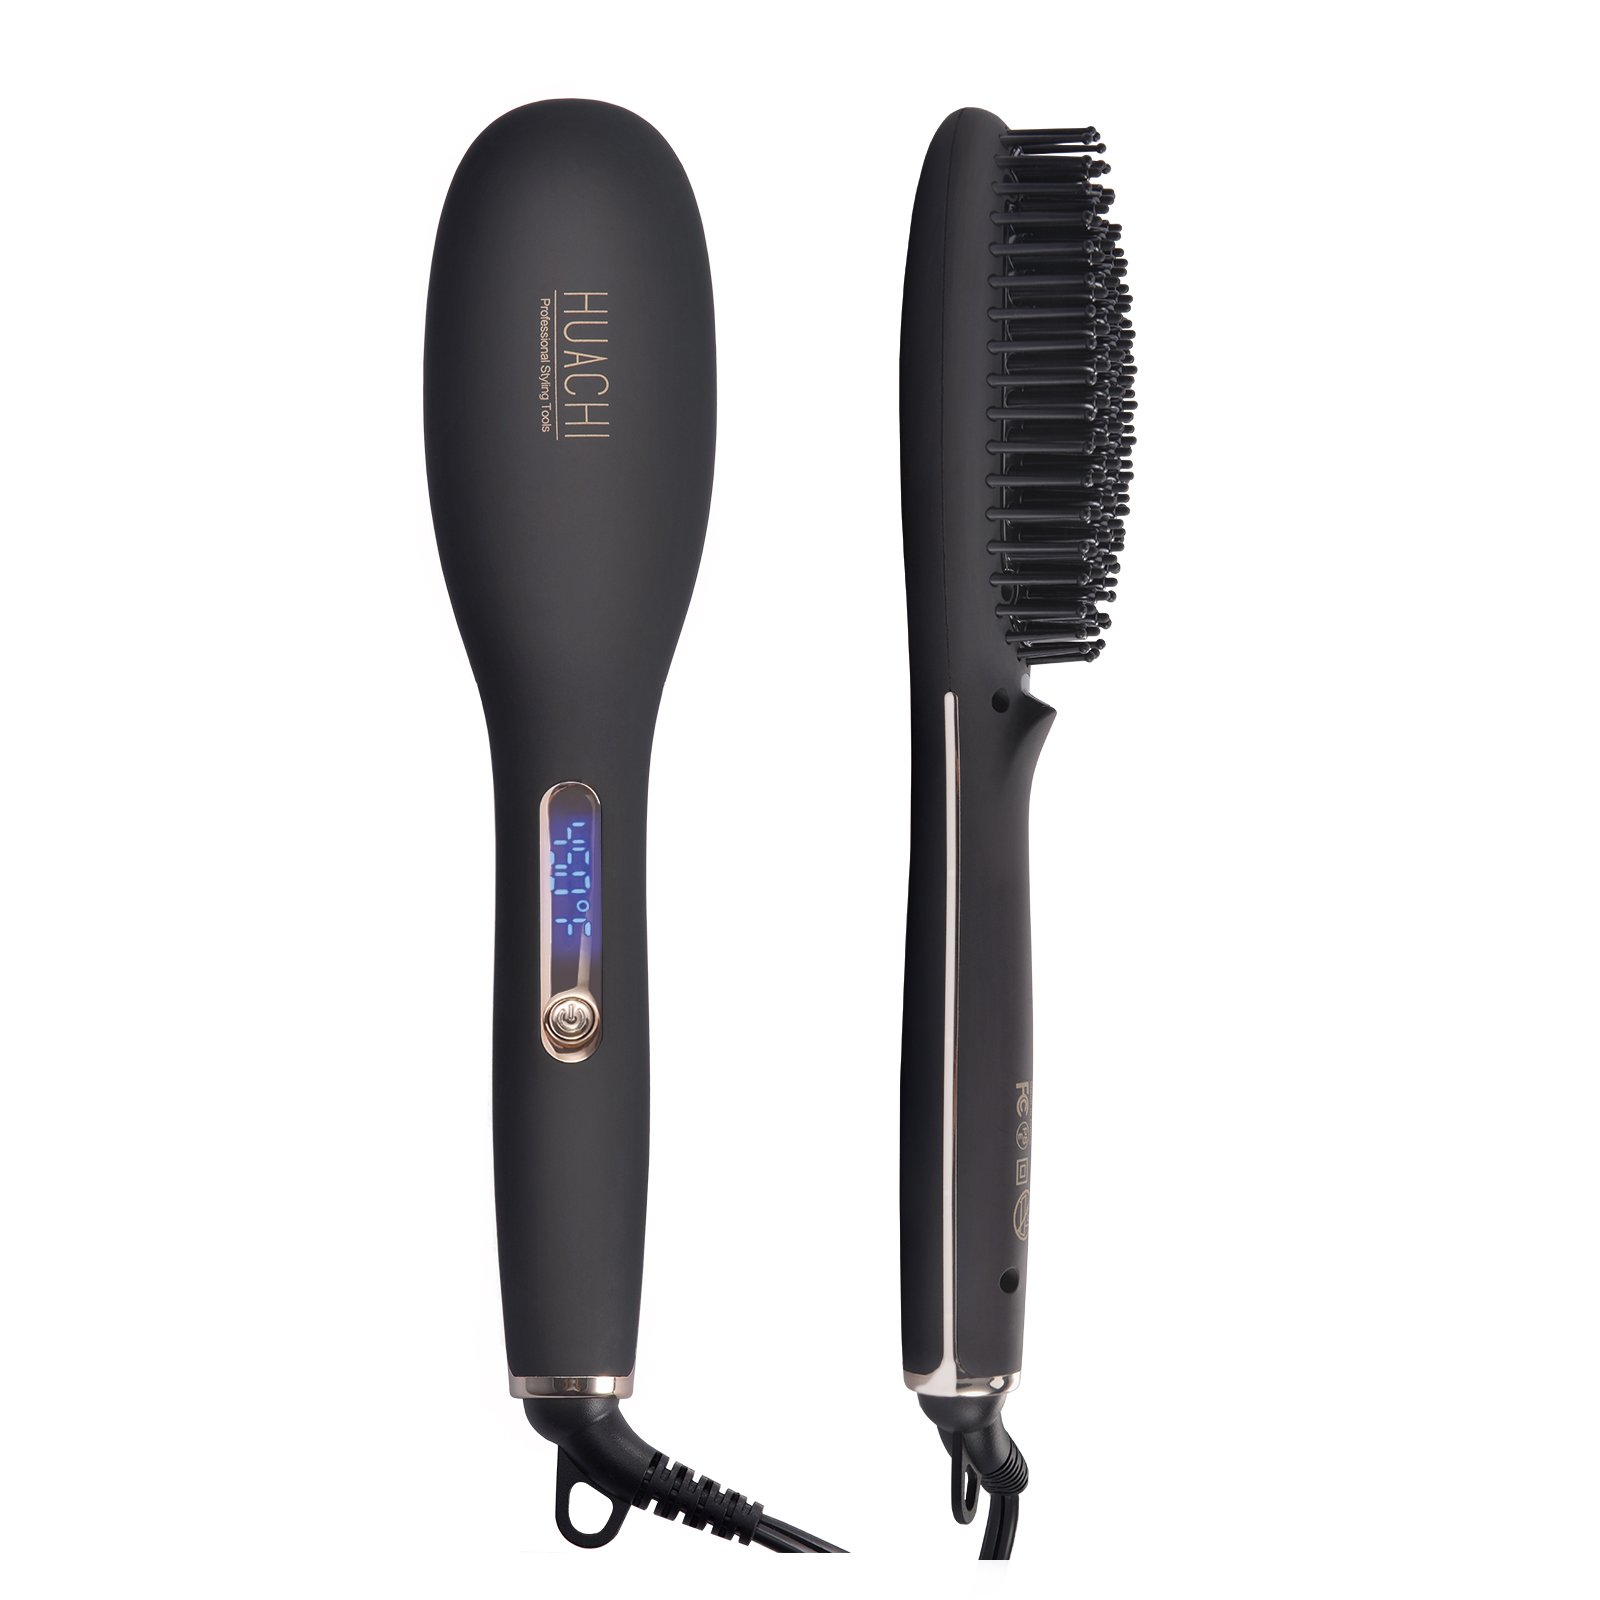 Huachi Hair Straightener Brush, 2 In 1 Ceramic Ionic Hair Straightening Brush, Portable Travel Straighteners with Auto Shut Off Function, Adjustable Temperature 330F-450F, Black